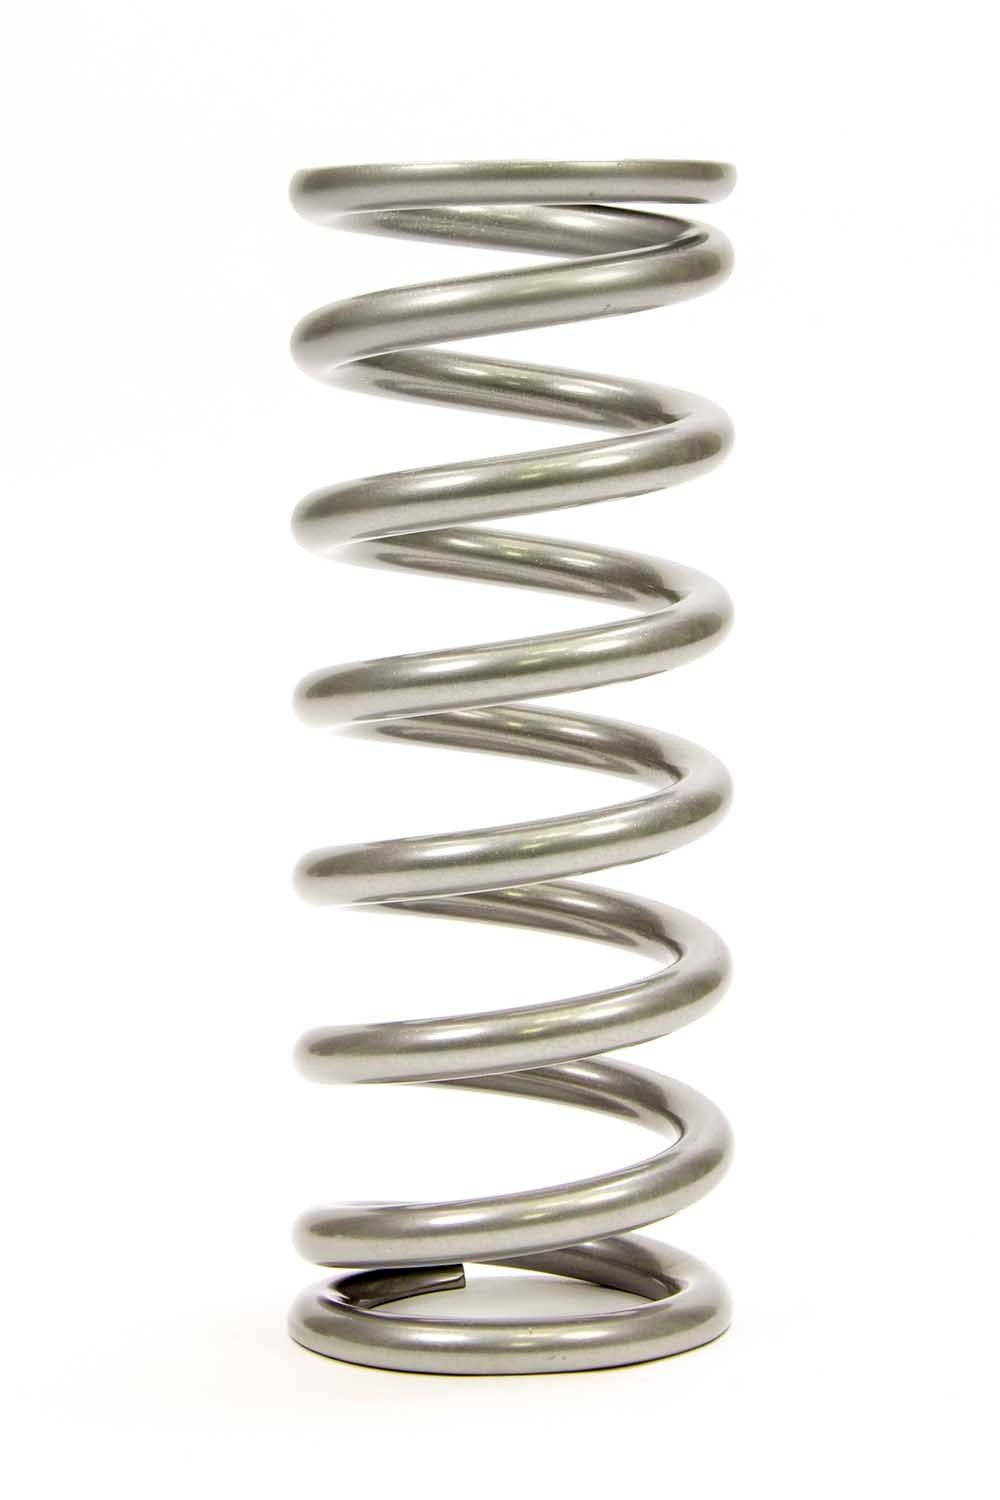 QA1 9HT400 Coil Spring - 2.5in x 9 400#